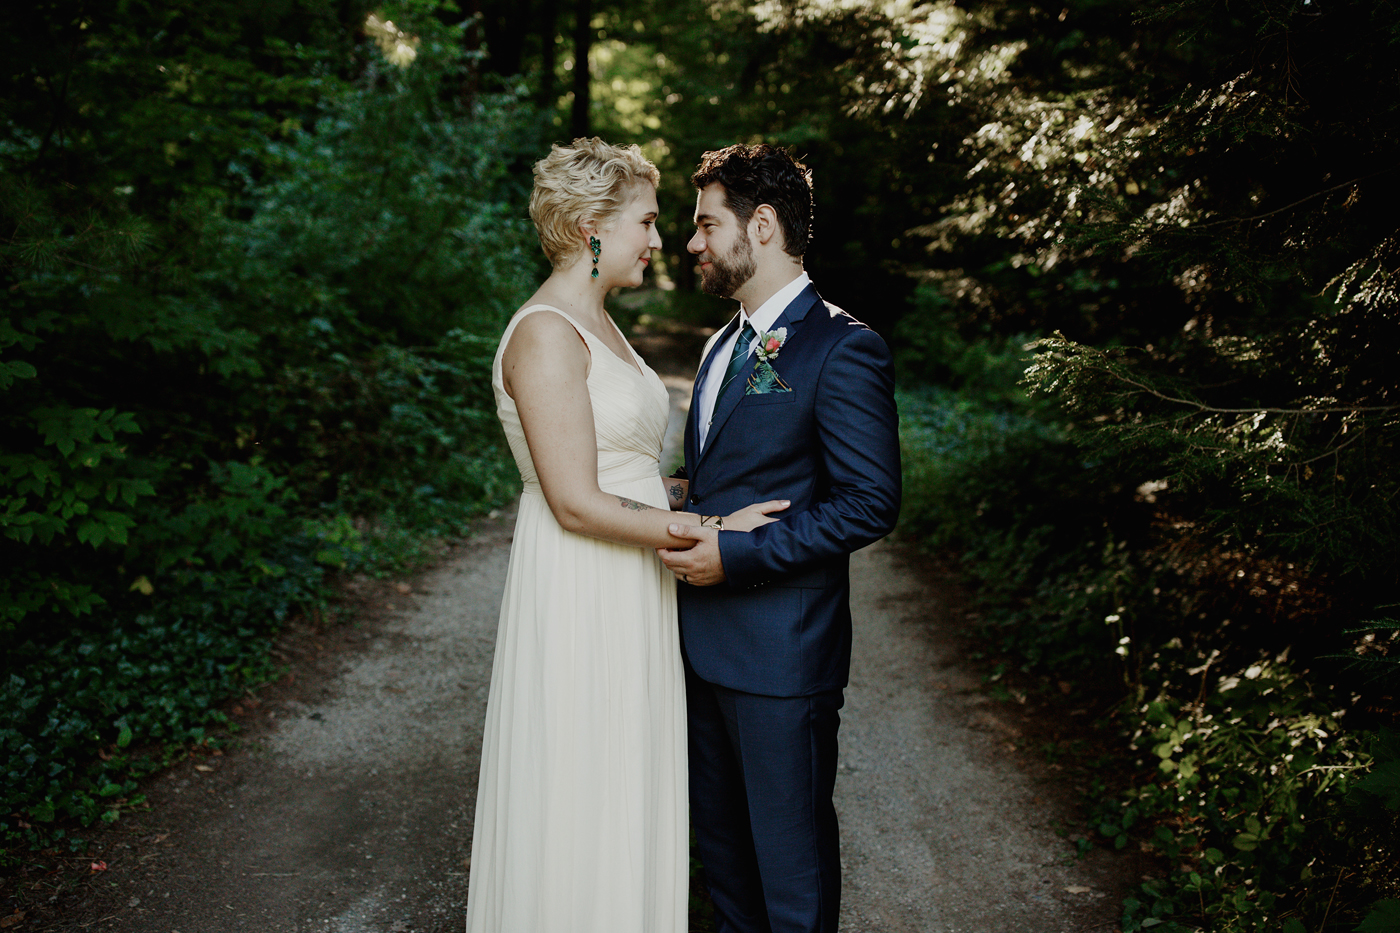 amandavanvels_backyardwedding_0311.jpg